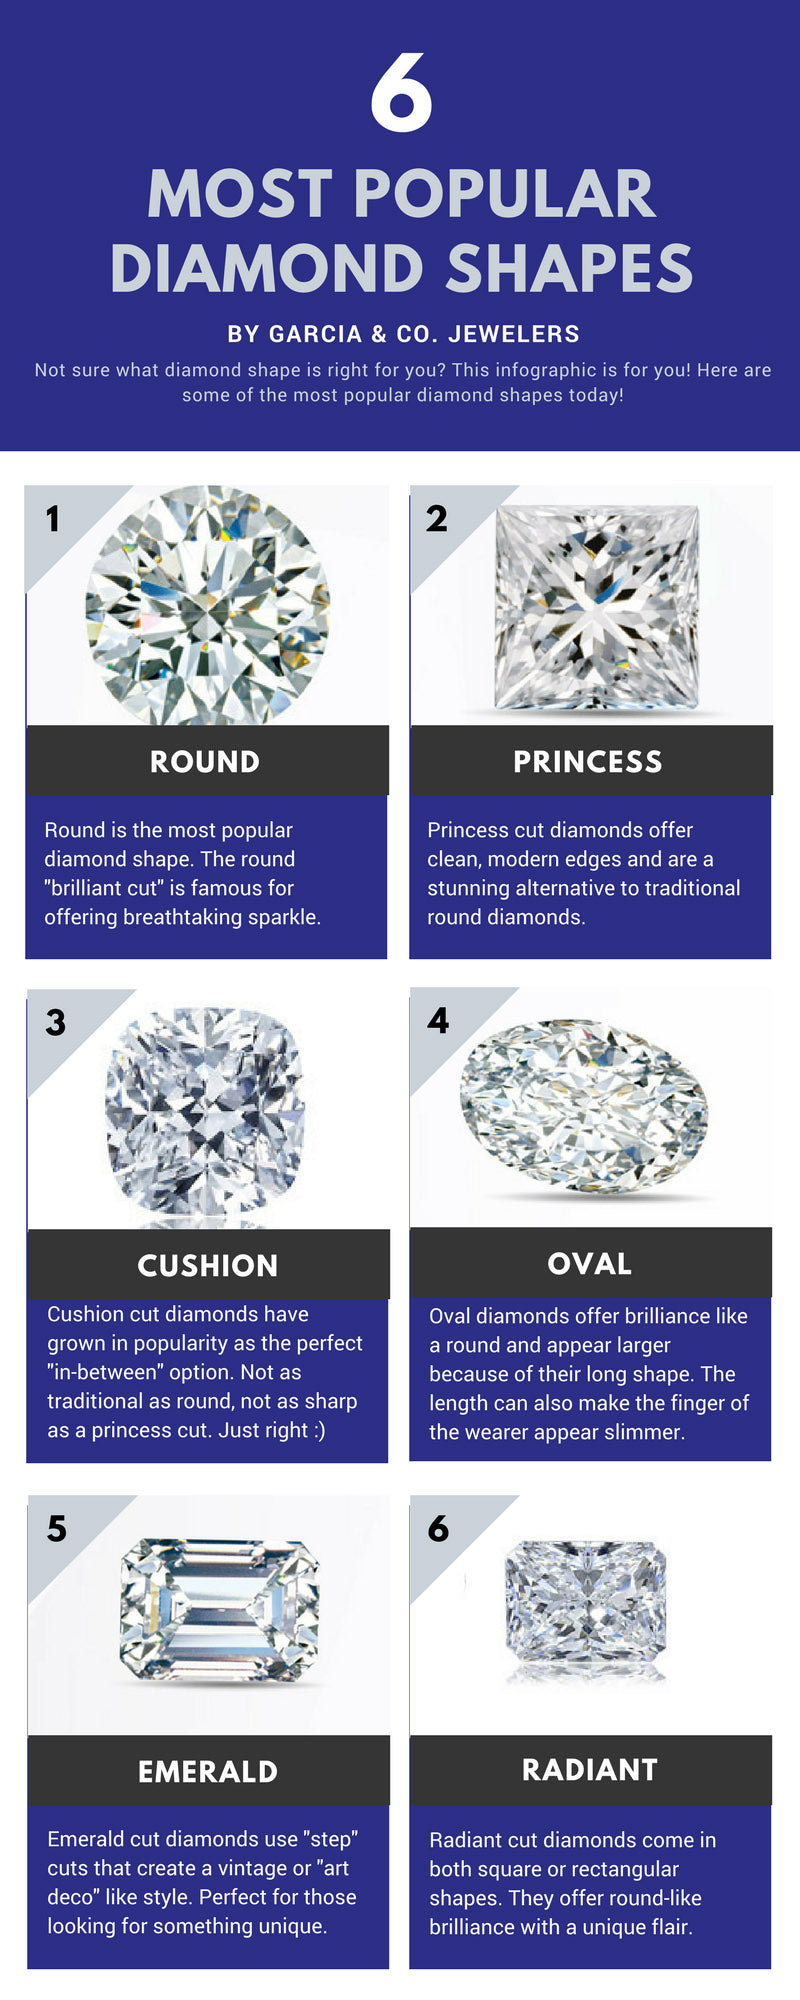 different diamond shapes infographic